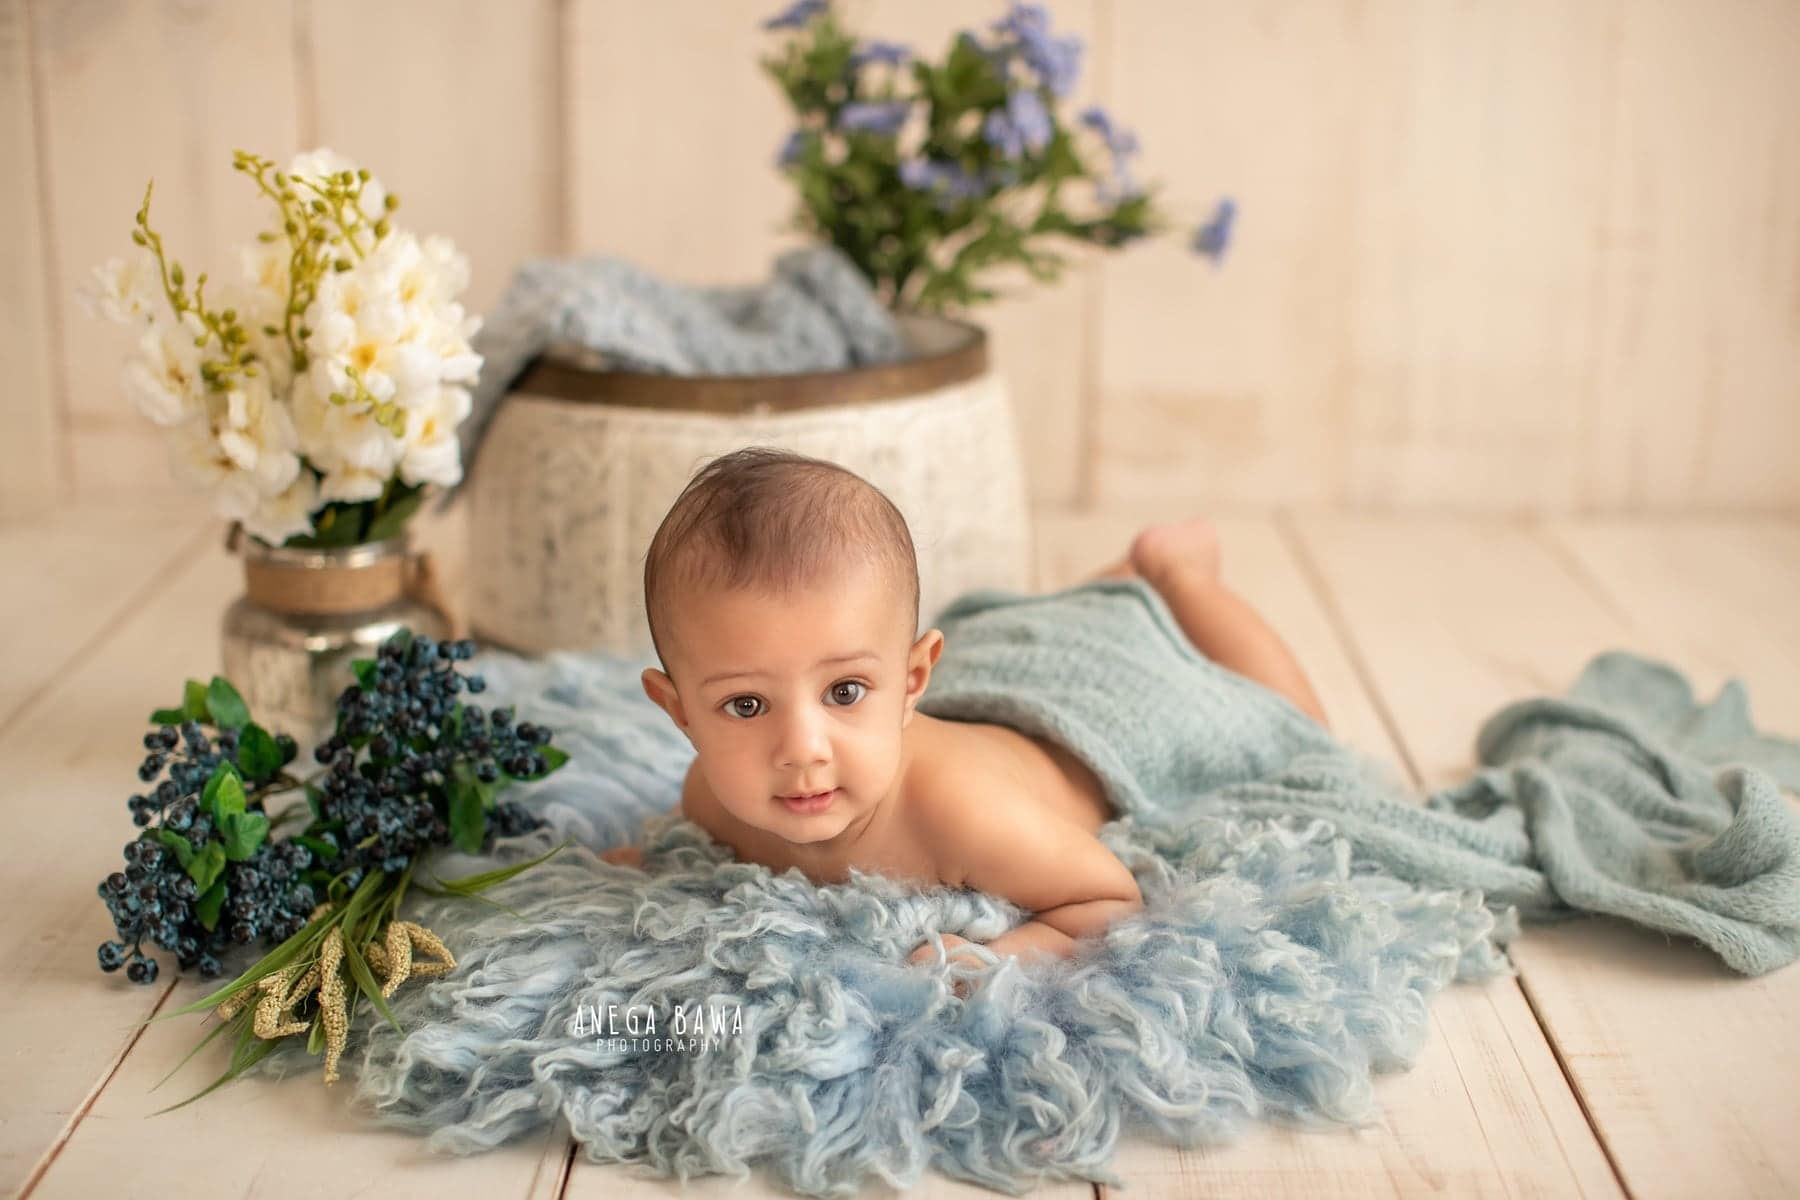 245602-white-wooden-background-blue-floral-baby-photography-delhi-4-5-6-7-months-baby-photoshoot-gurgaon-anega-bawa